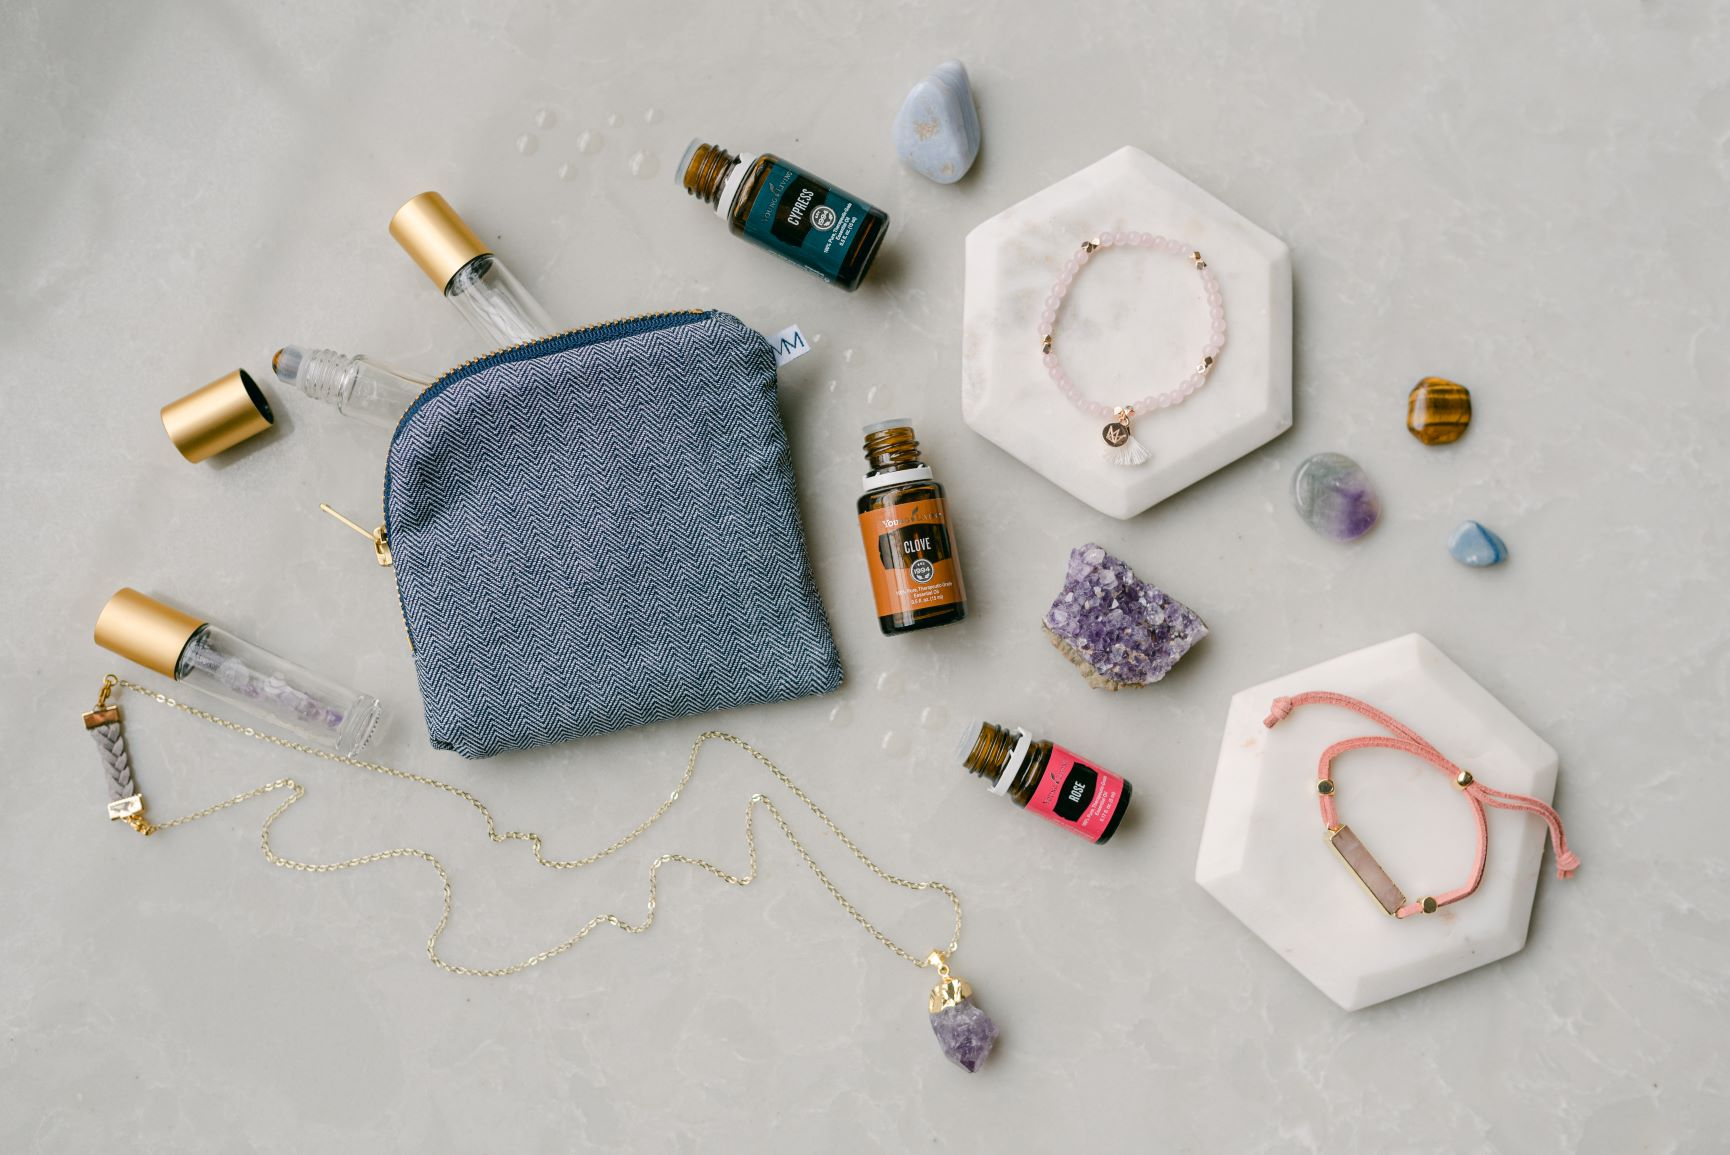 oils and crystals pairing